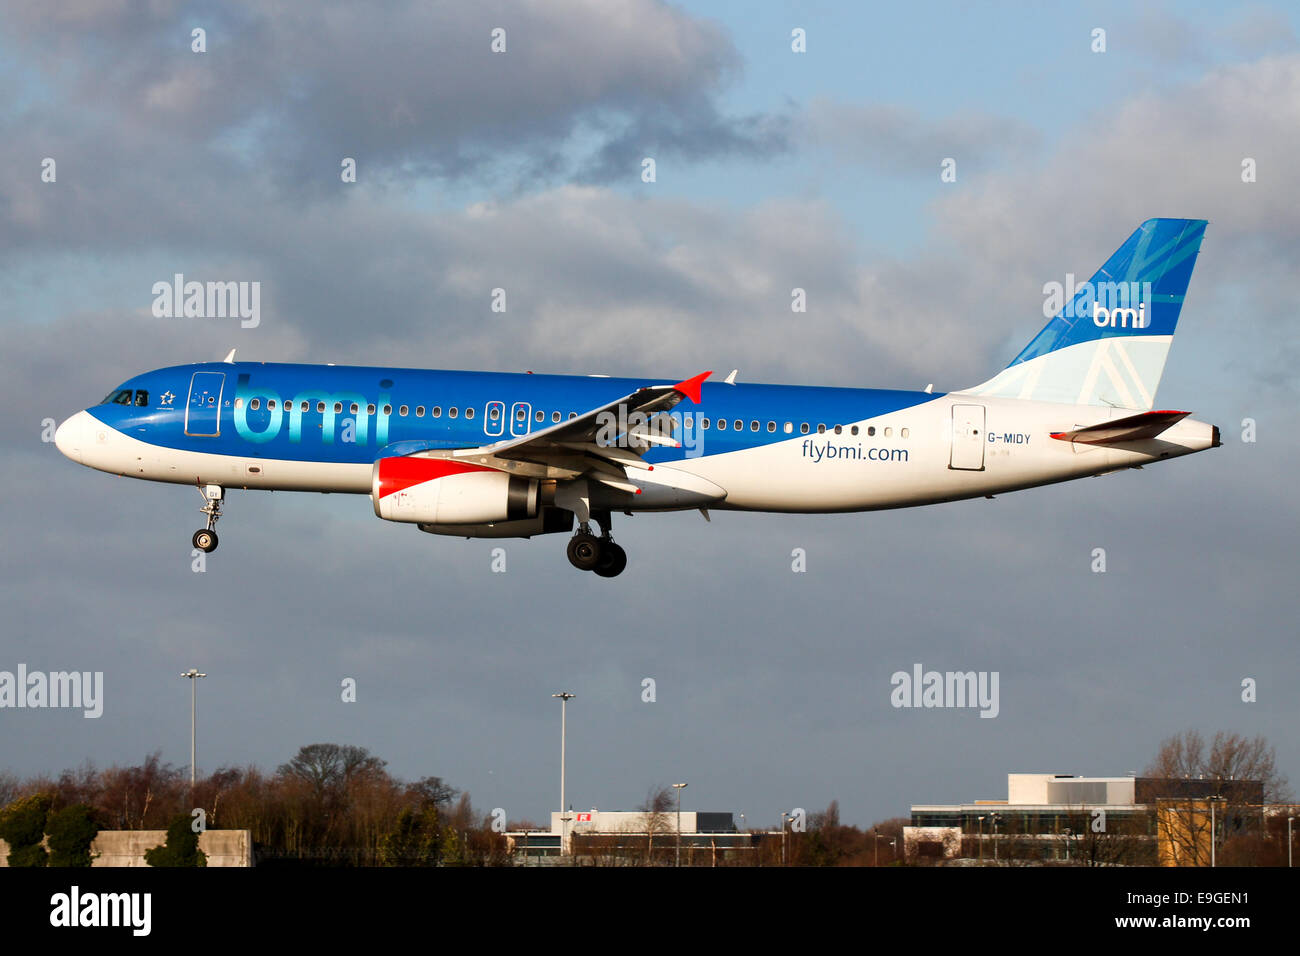 bmi British Midland Airbus A320 approaches runway 23R at Manchester Airport. - Stock Image